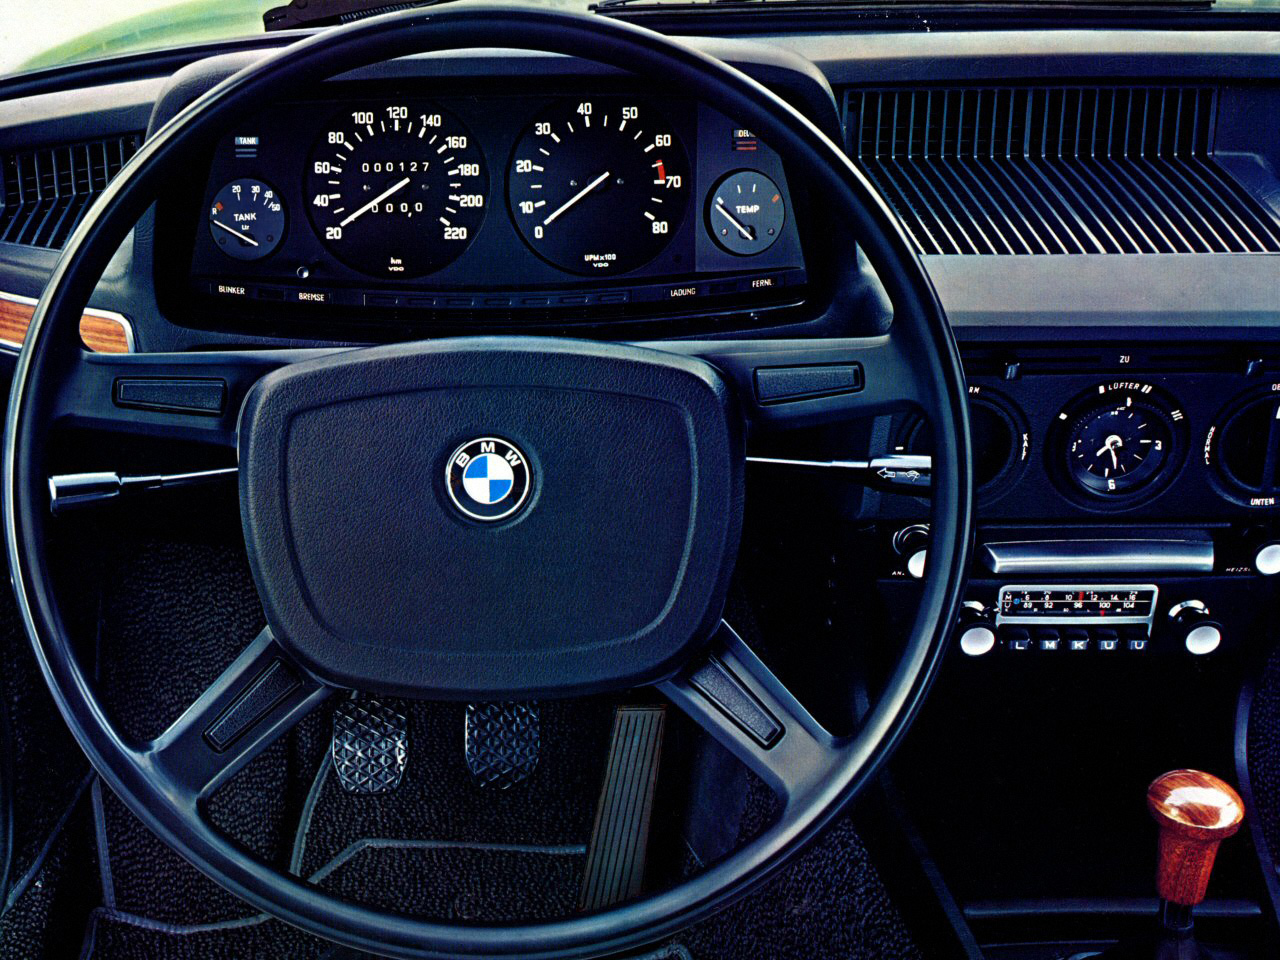 BMW 5 series 520i 1976 photo - 12